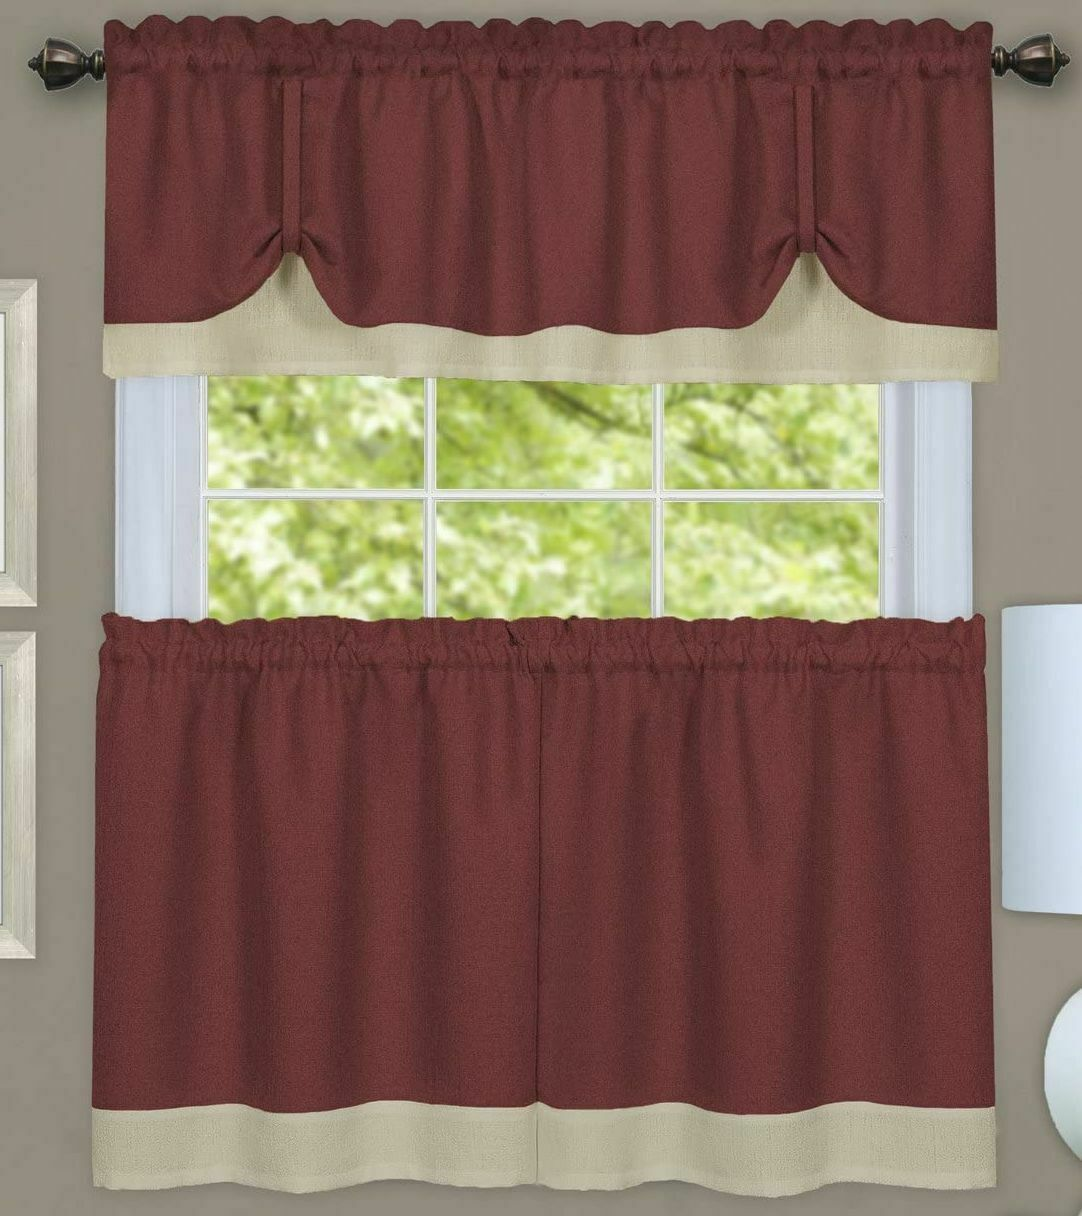 "Primary image for 3 pc Curtains Set: 2 Tiers & Valance (58""x14"") MARSALA BROWN & BEIGE,DARCY,Achim"